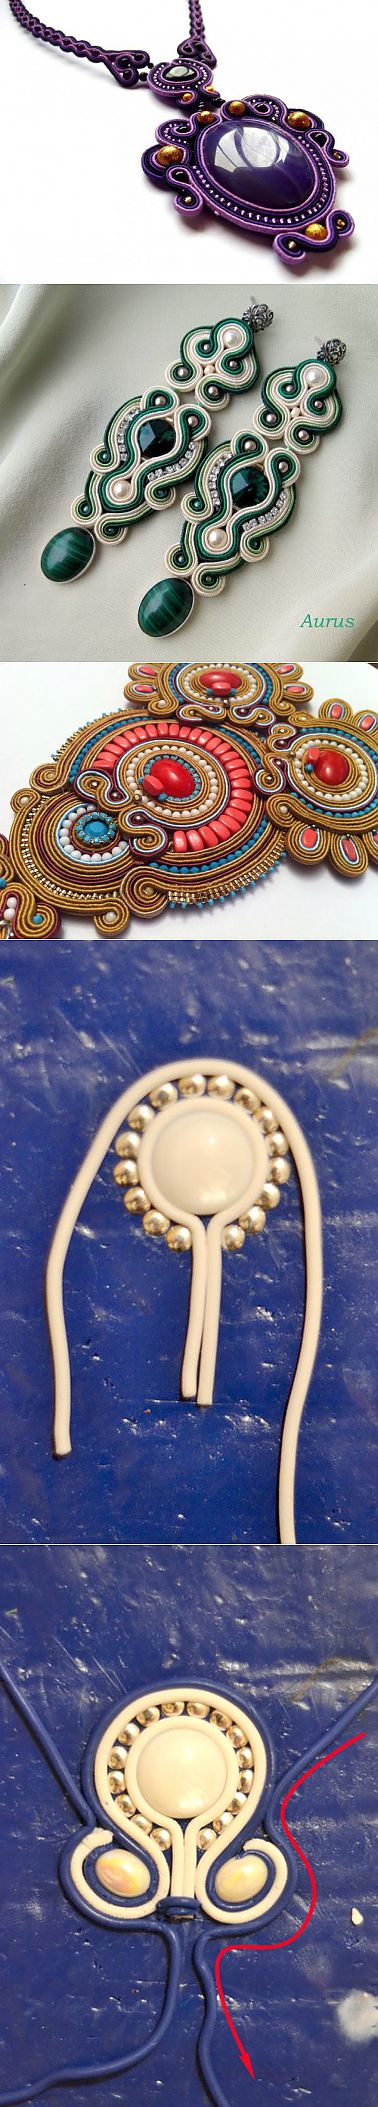 (+1) - Imitation of a soutache or filigran from polymeric clay. Author of MK Alenka Vityugova | the HANDS